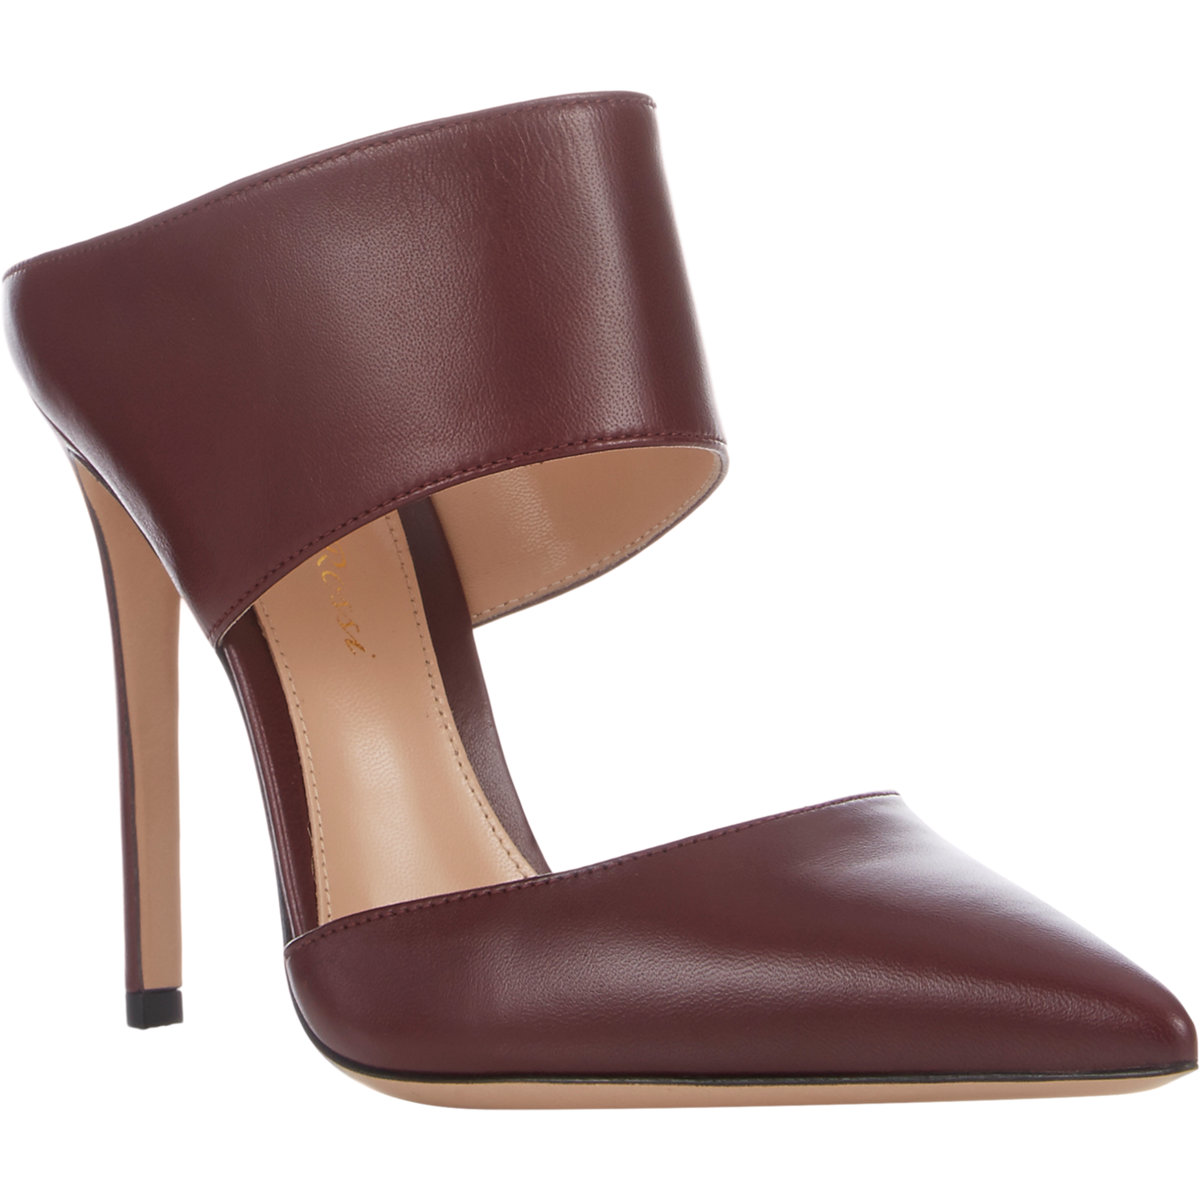 Toe mules at barneys.com